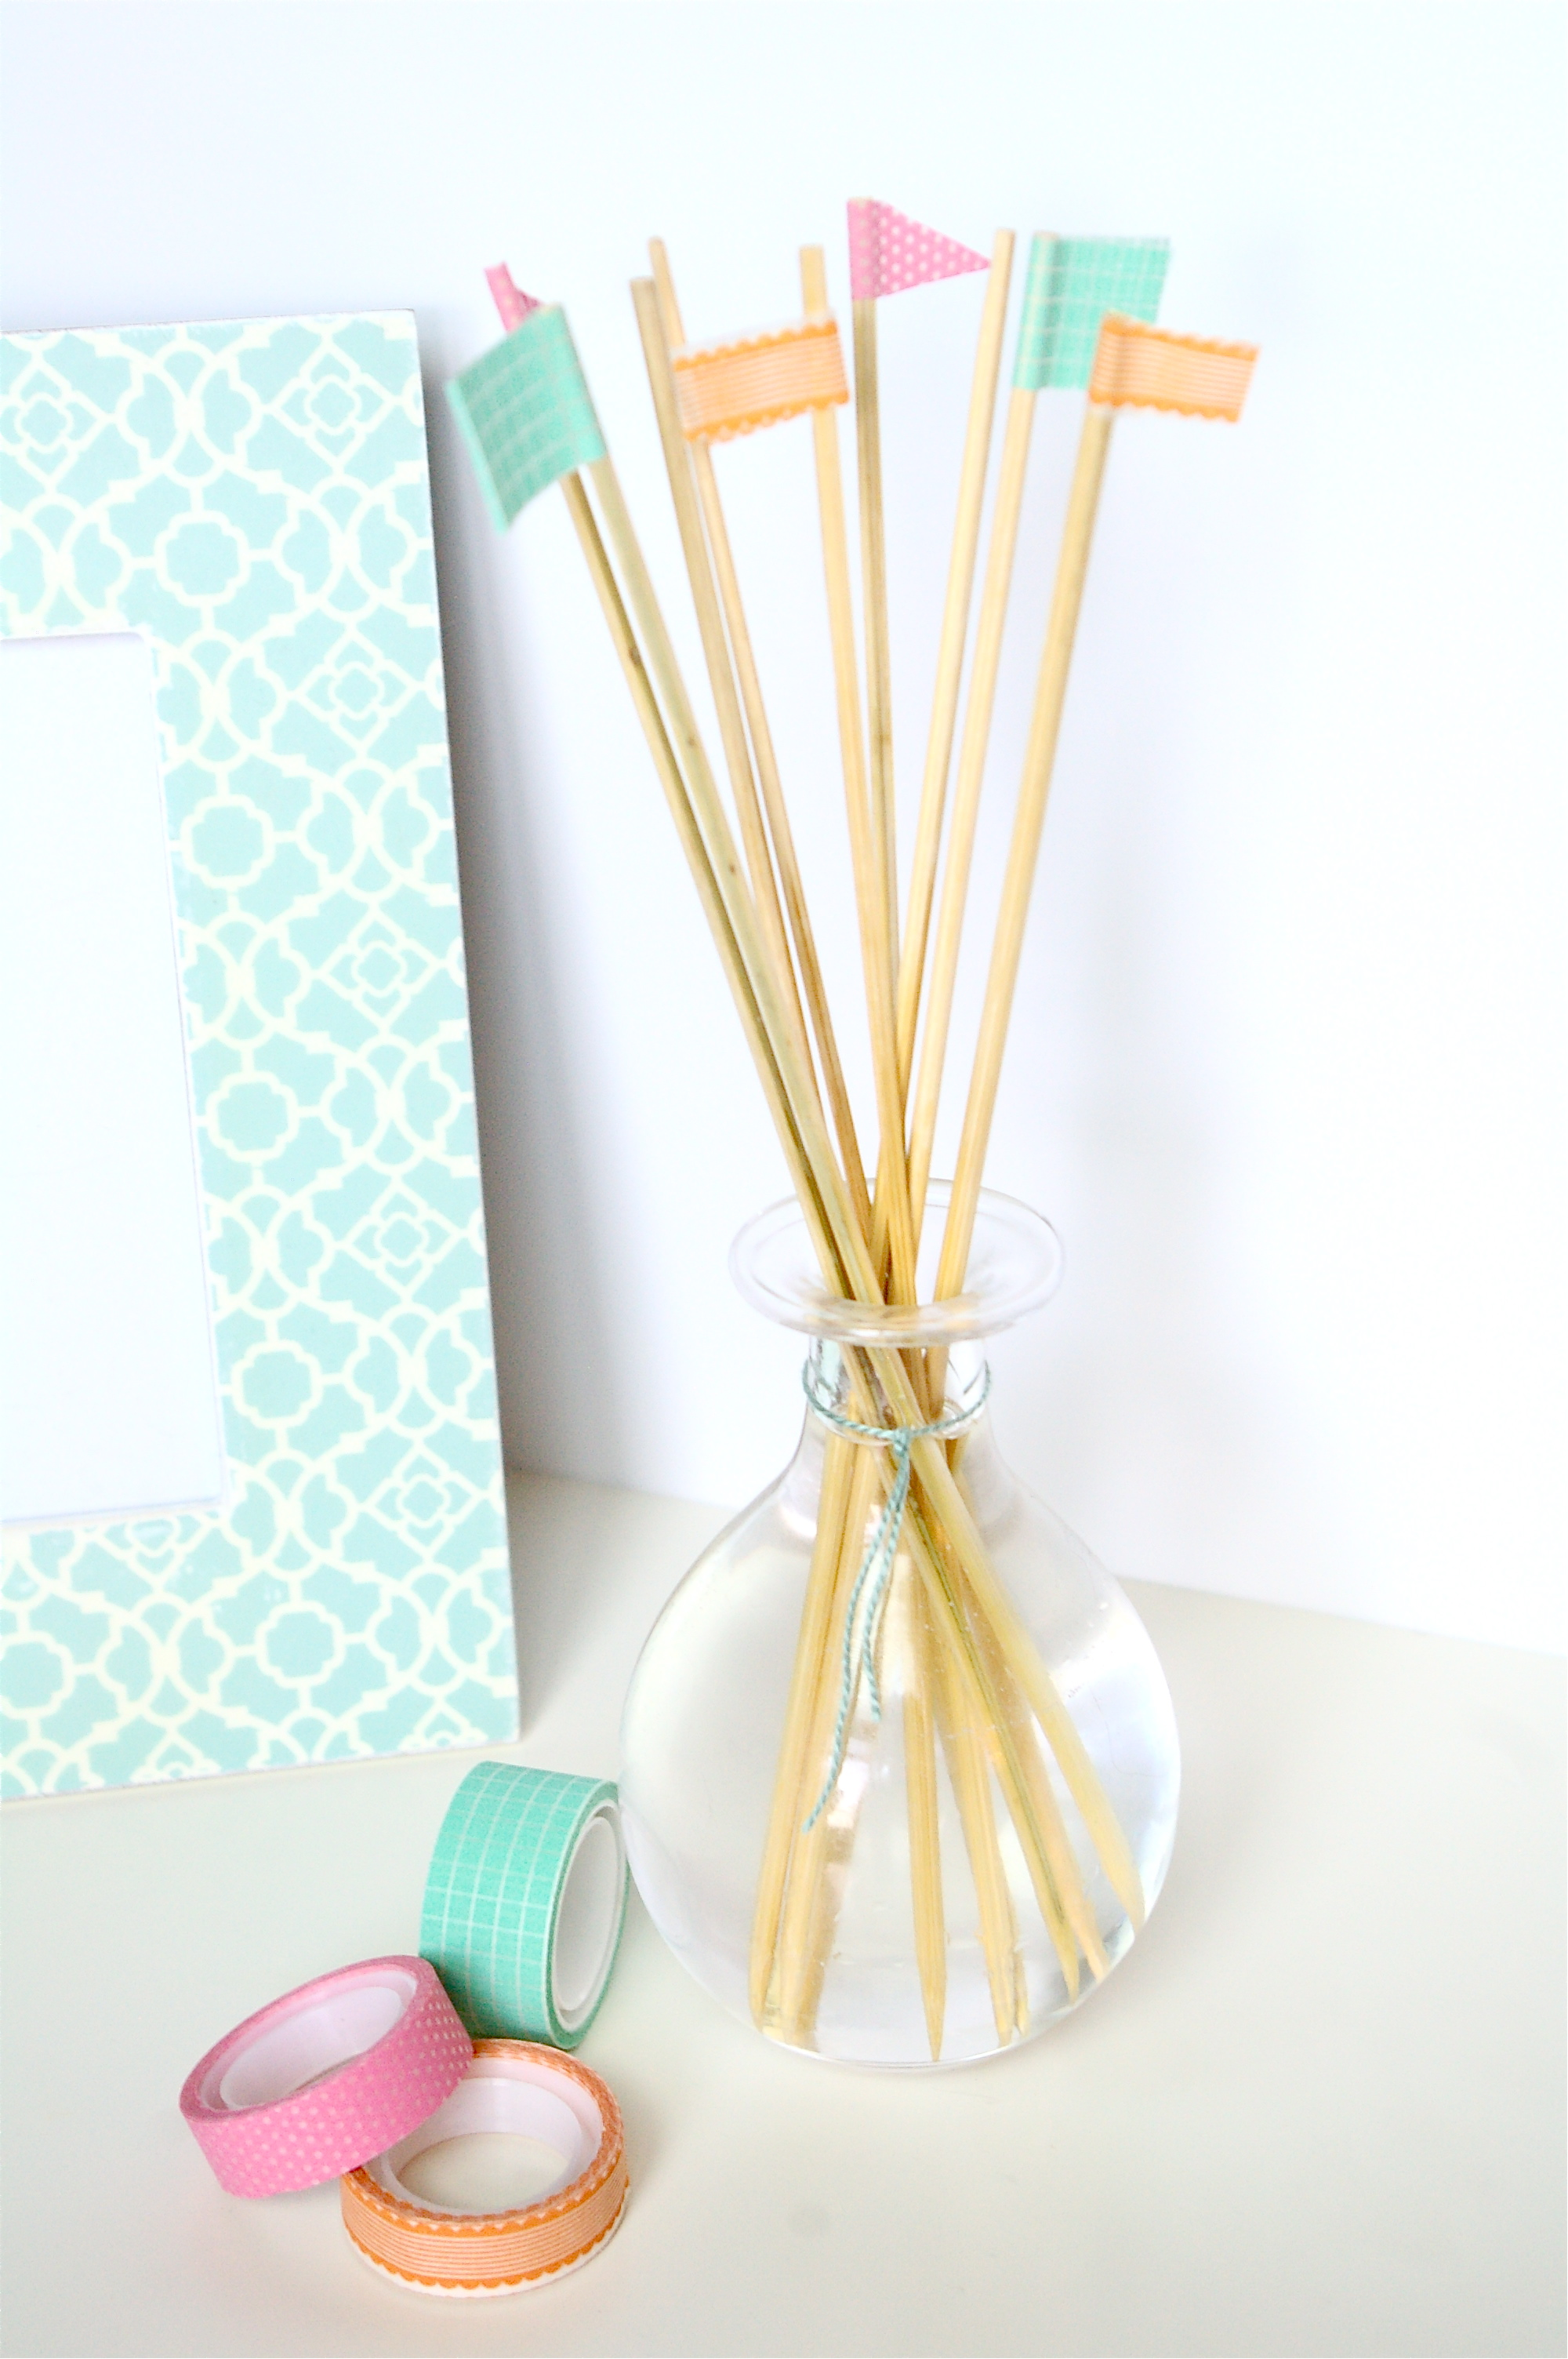 DIY Reed Diffuser by Top Houston Lifestyle Blogger Ashley Rose #essentialoil #oil #peppermint #aroma #scent #reeddiffuser #diffuser